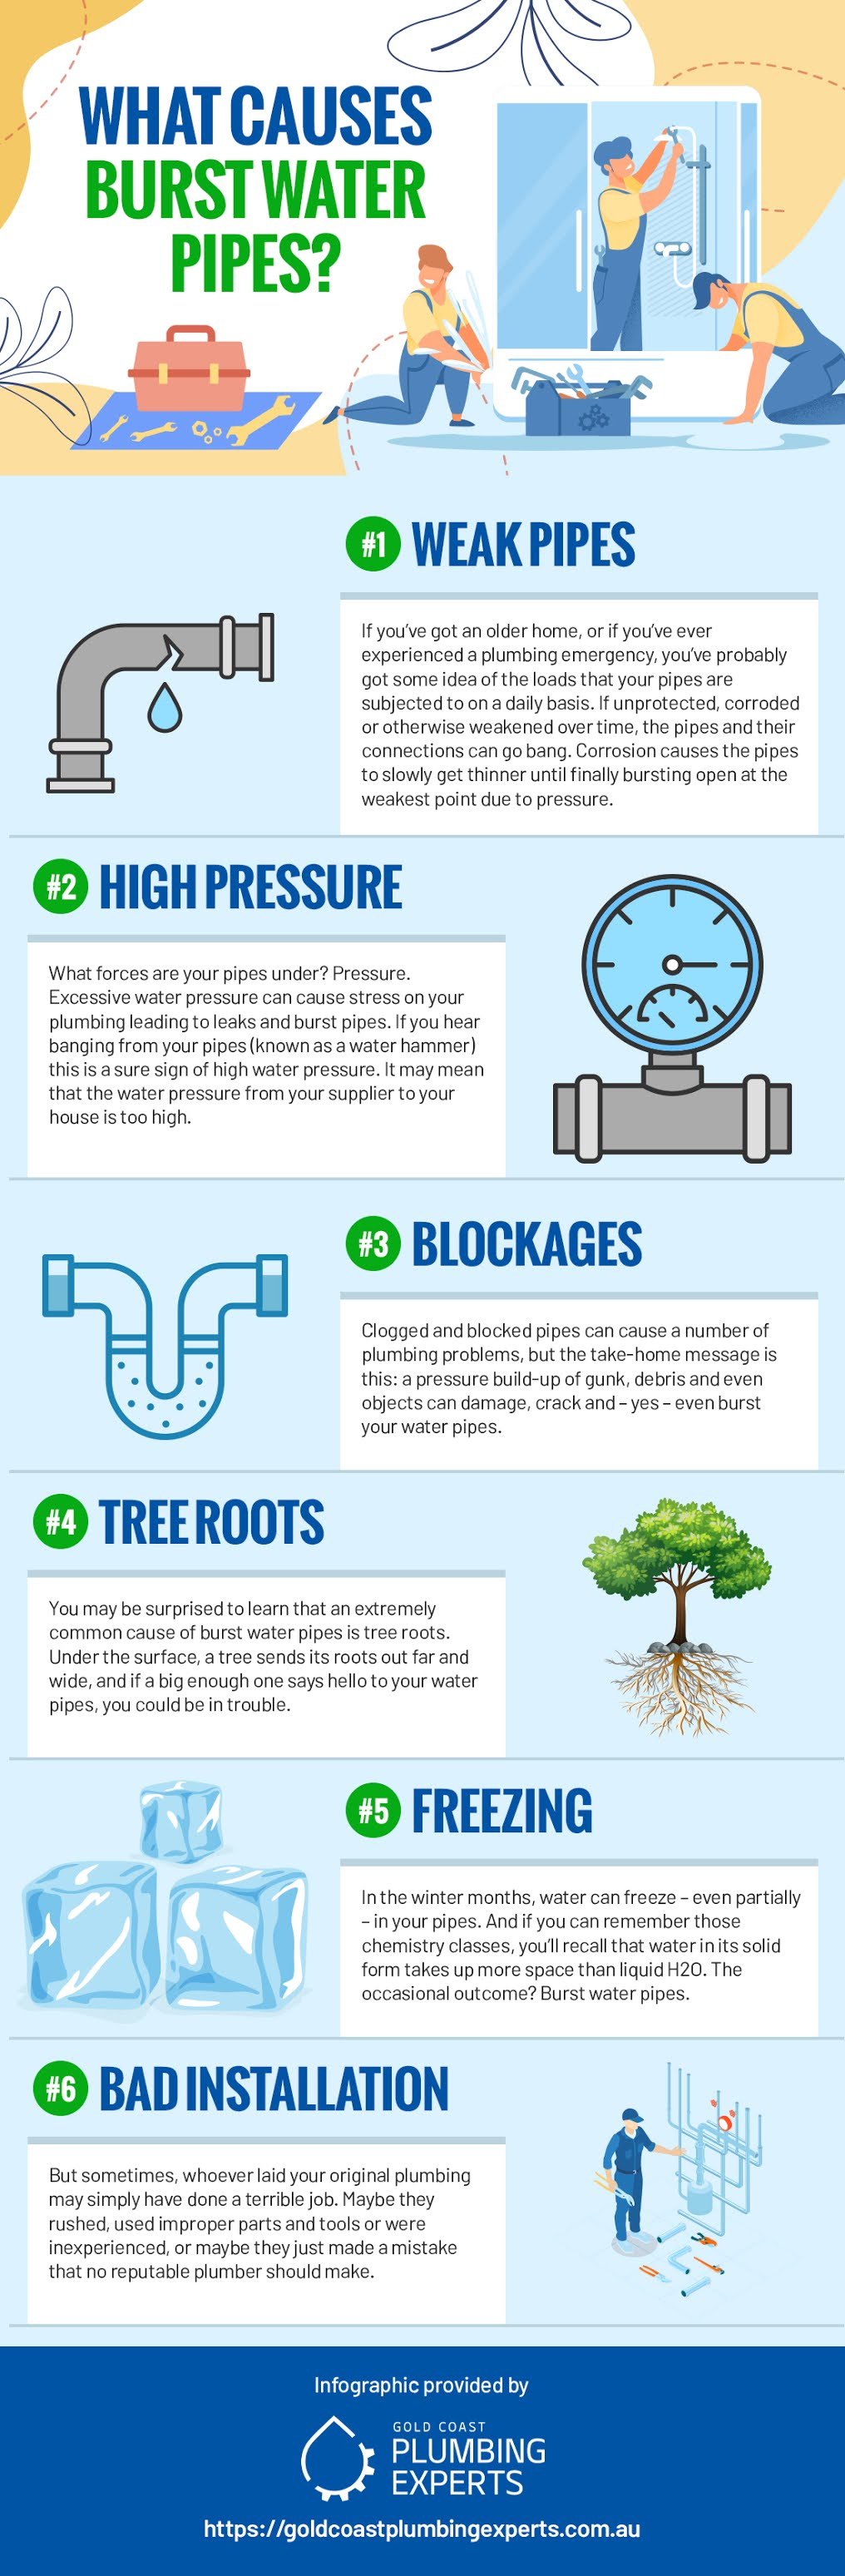 What Causes Burst Water Pipes? #infographic